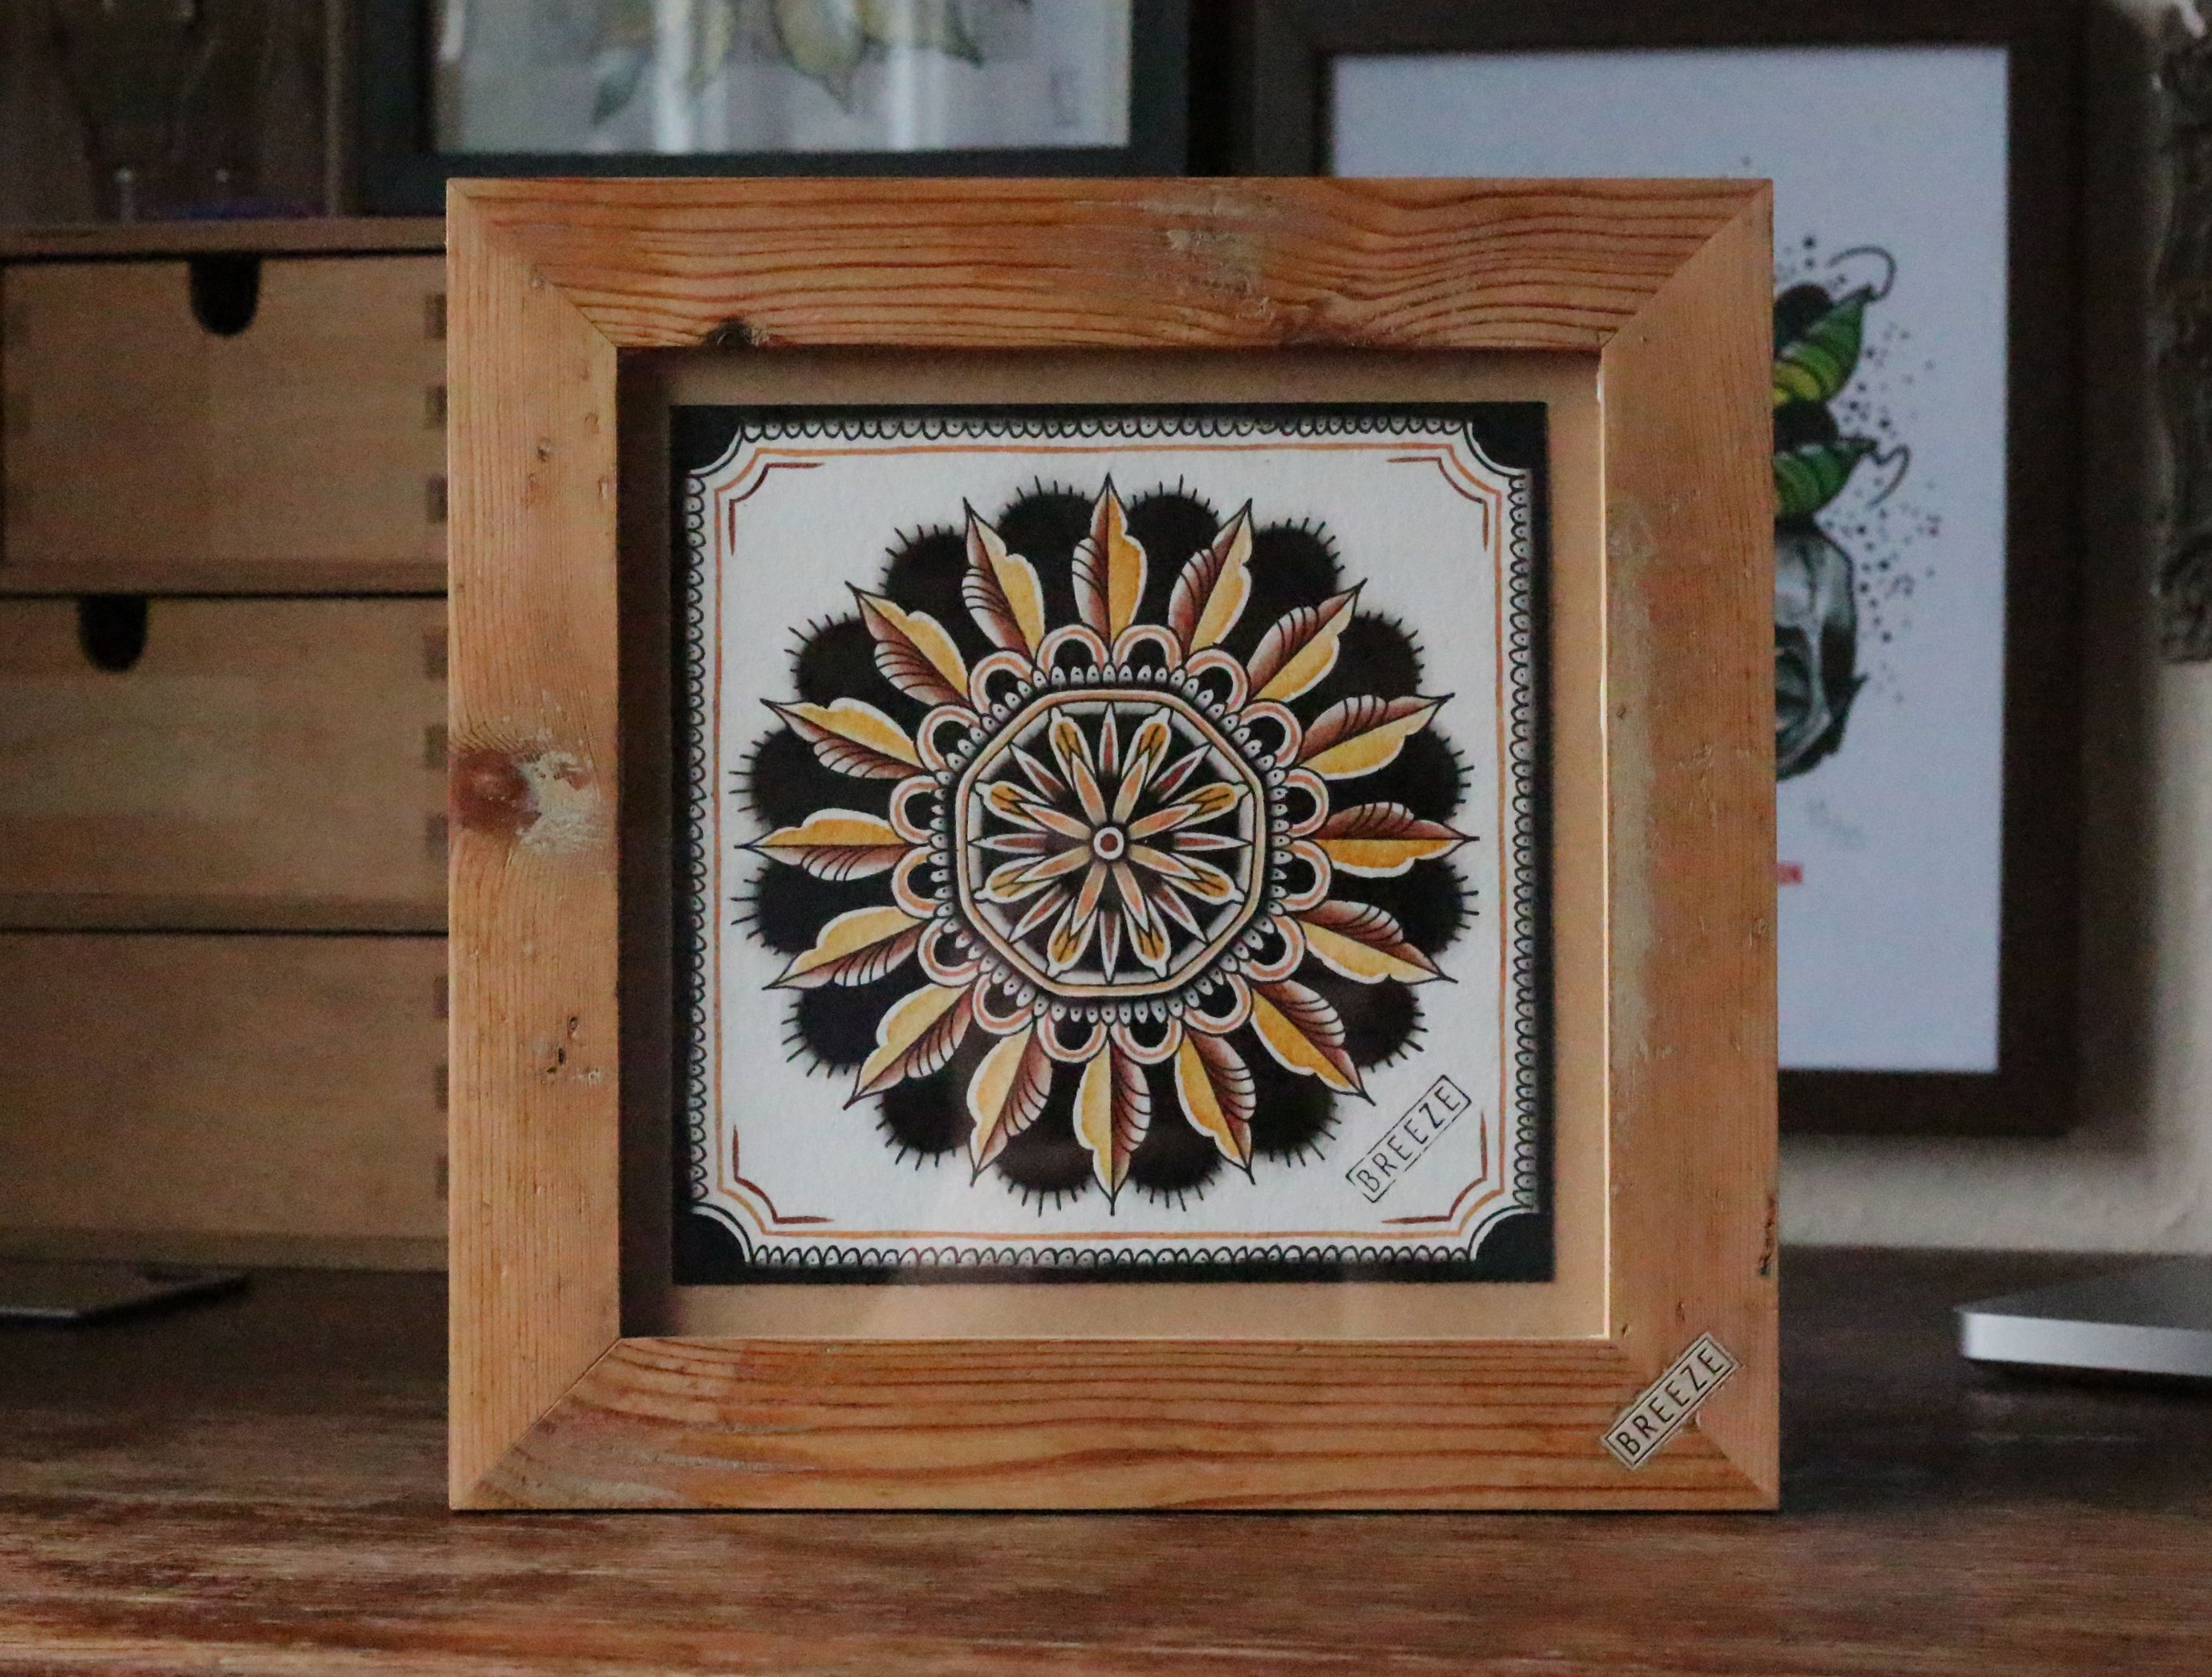 Mandala painting and Hand-made frame by Aaron Breeze | Aaron Breeze ...